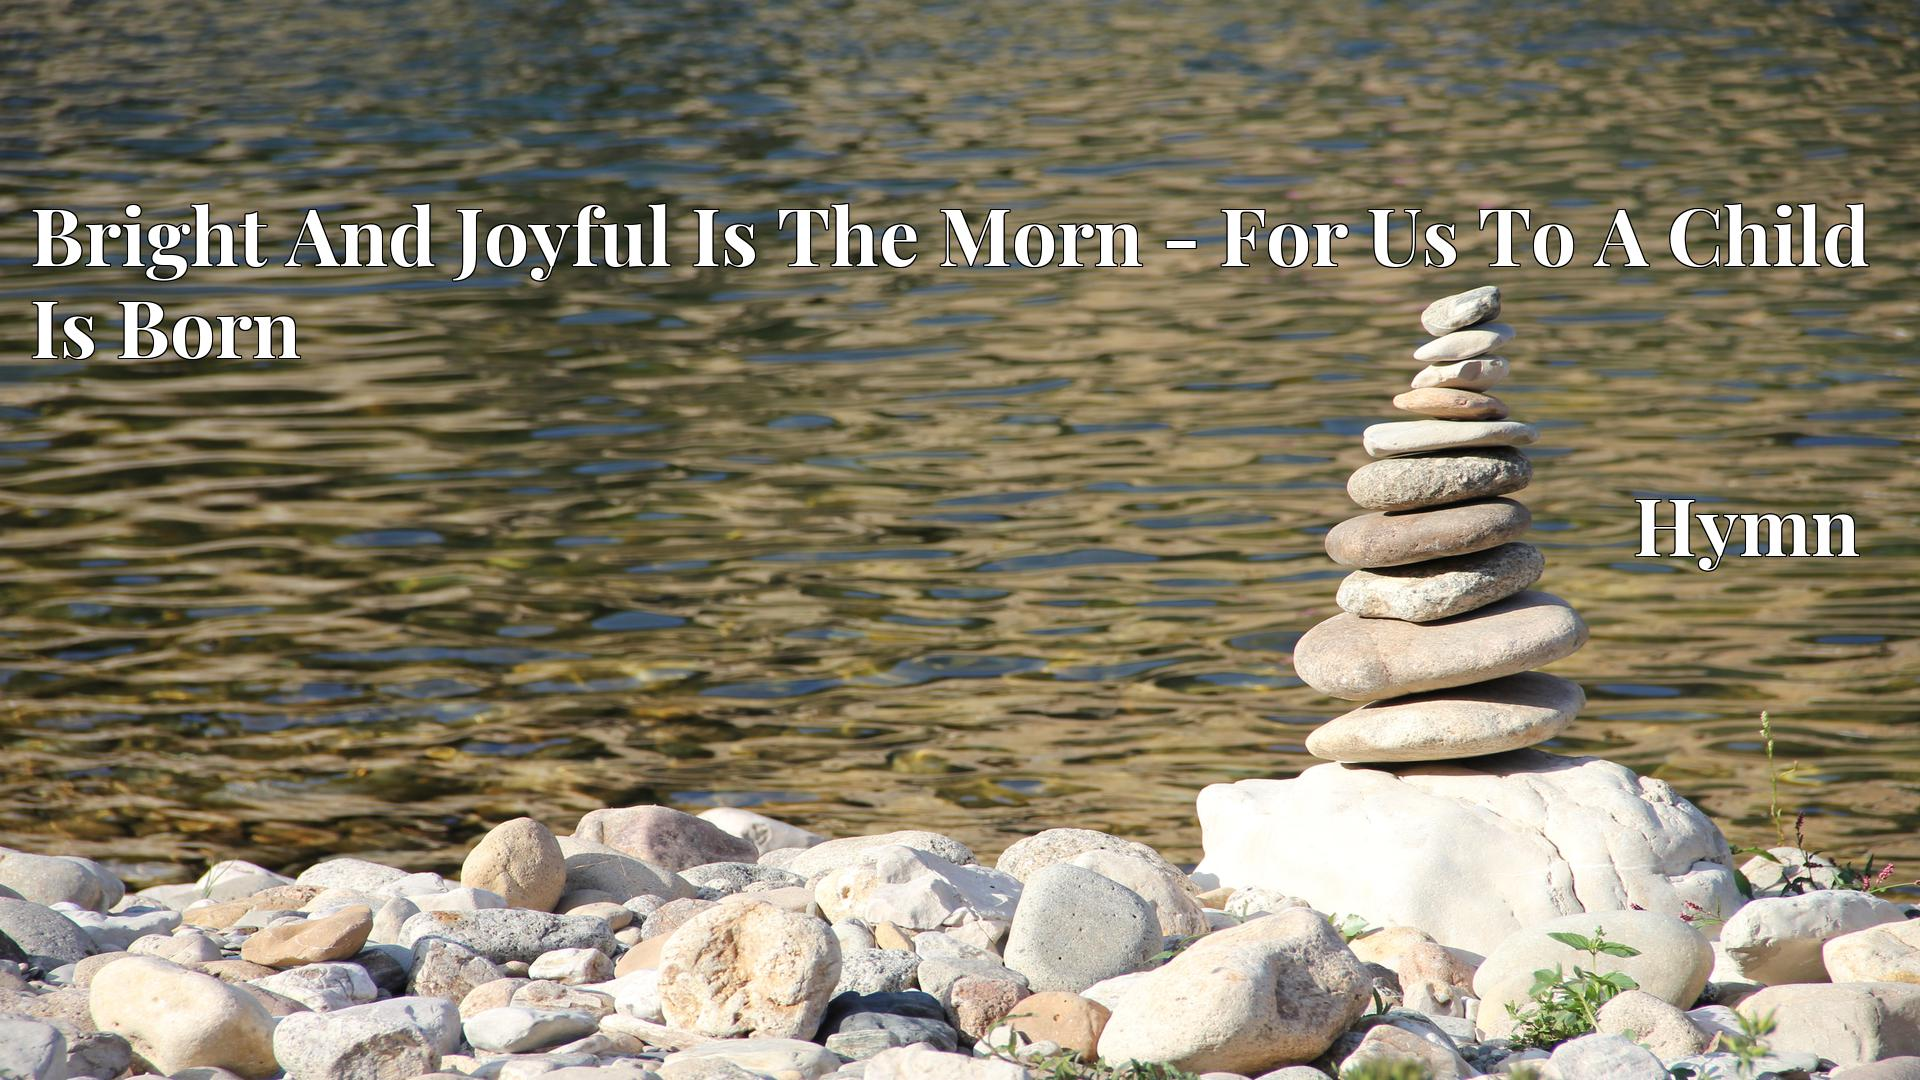 Bright And Joyful Is The Morn - For Us To A Child Is Born - Hymn